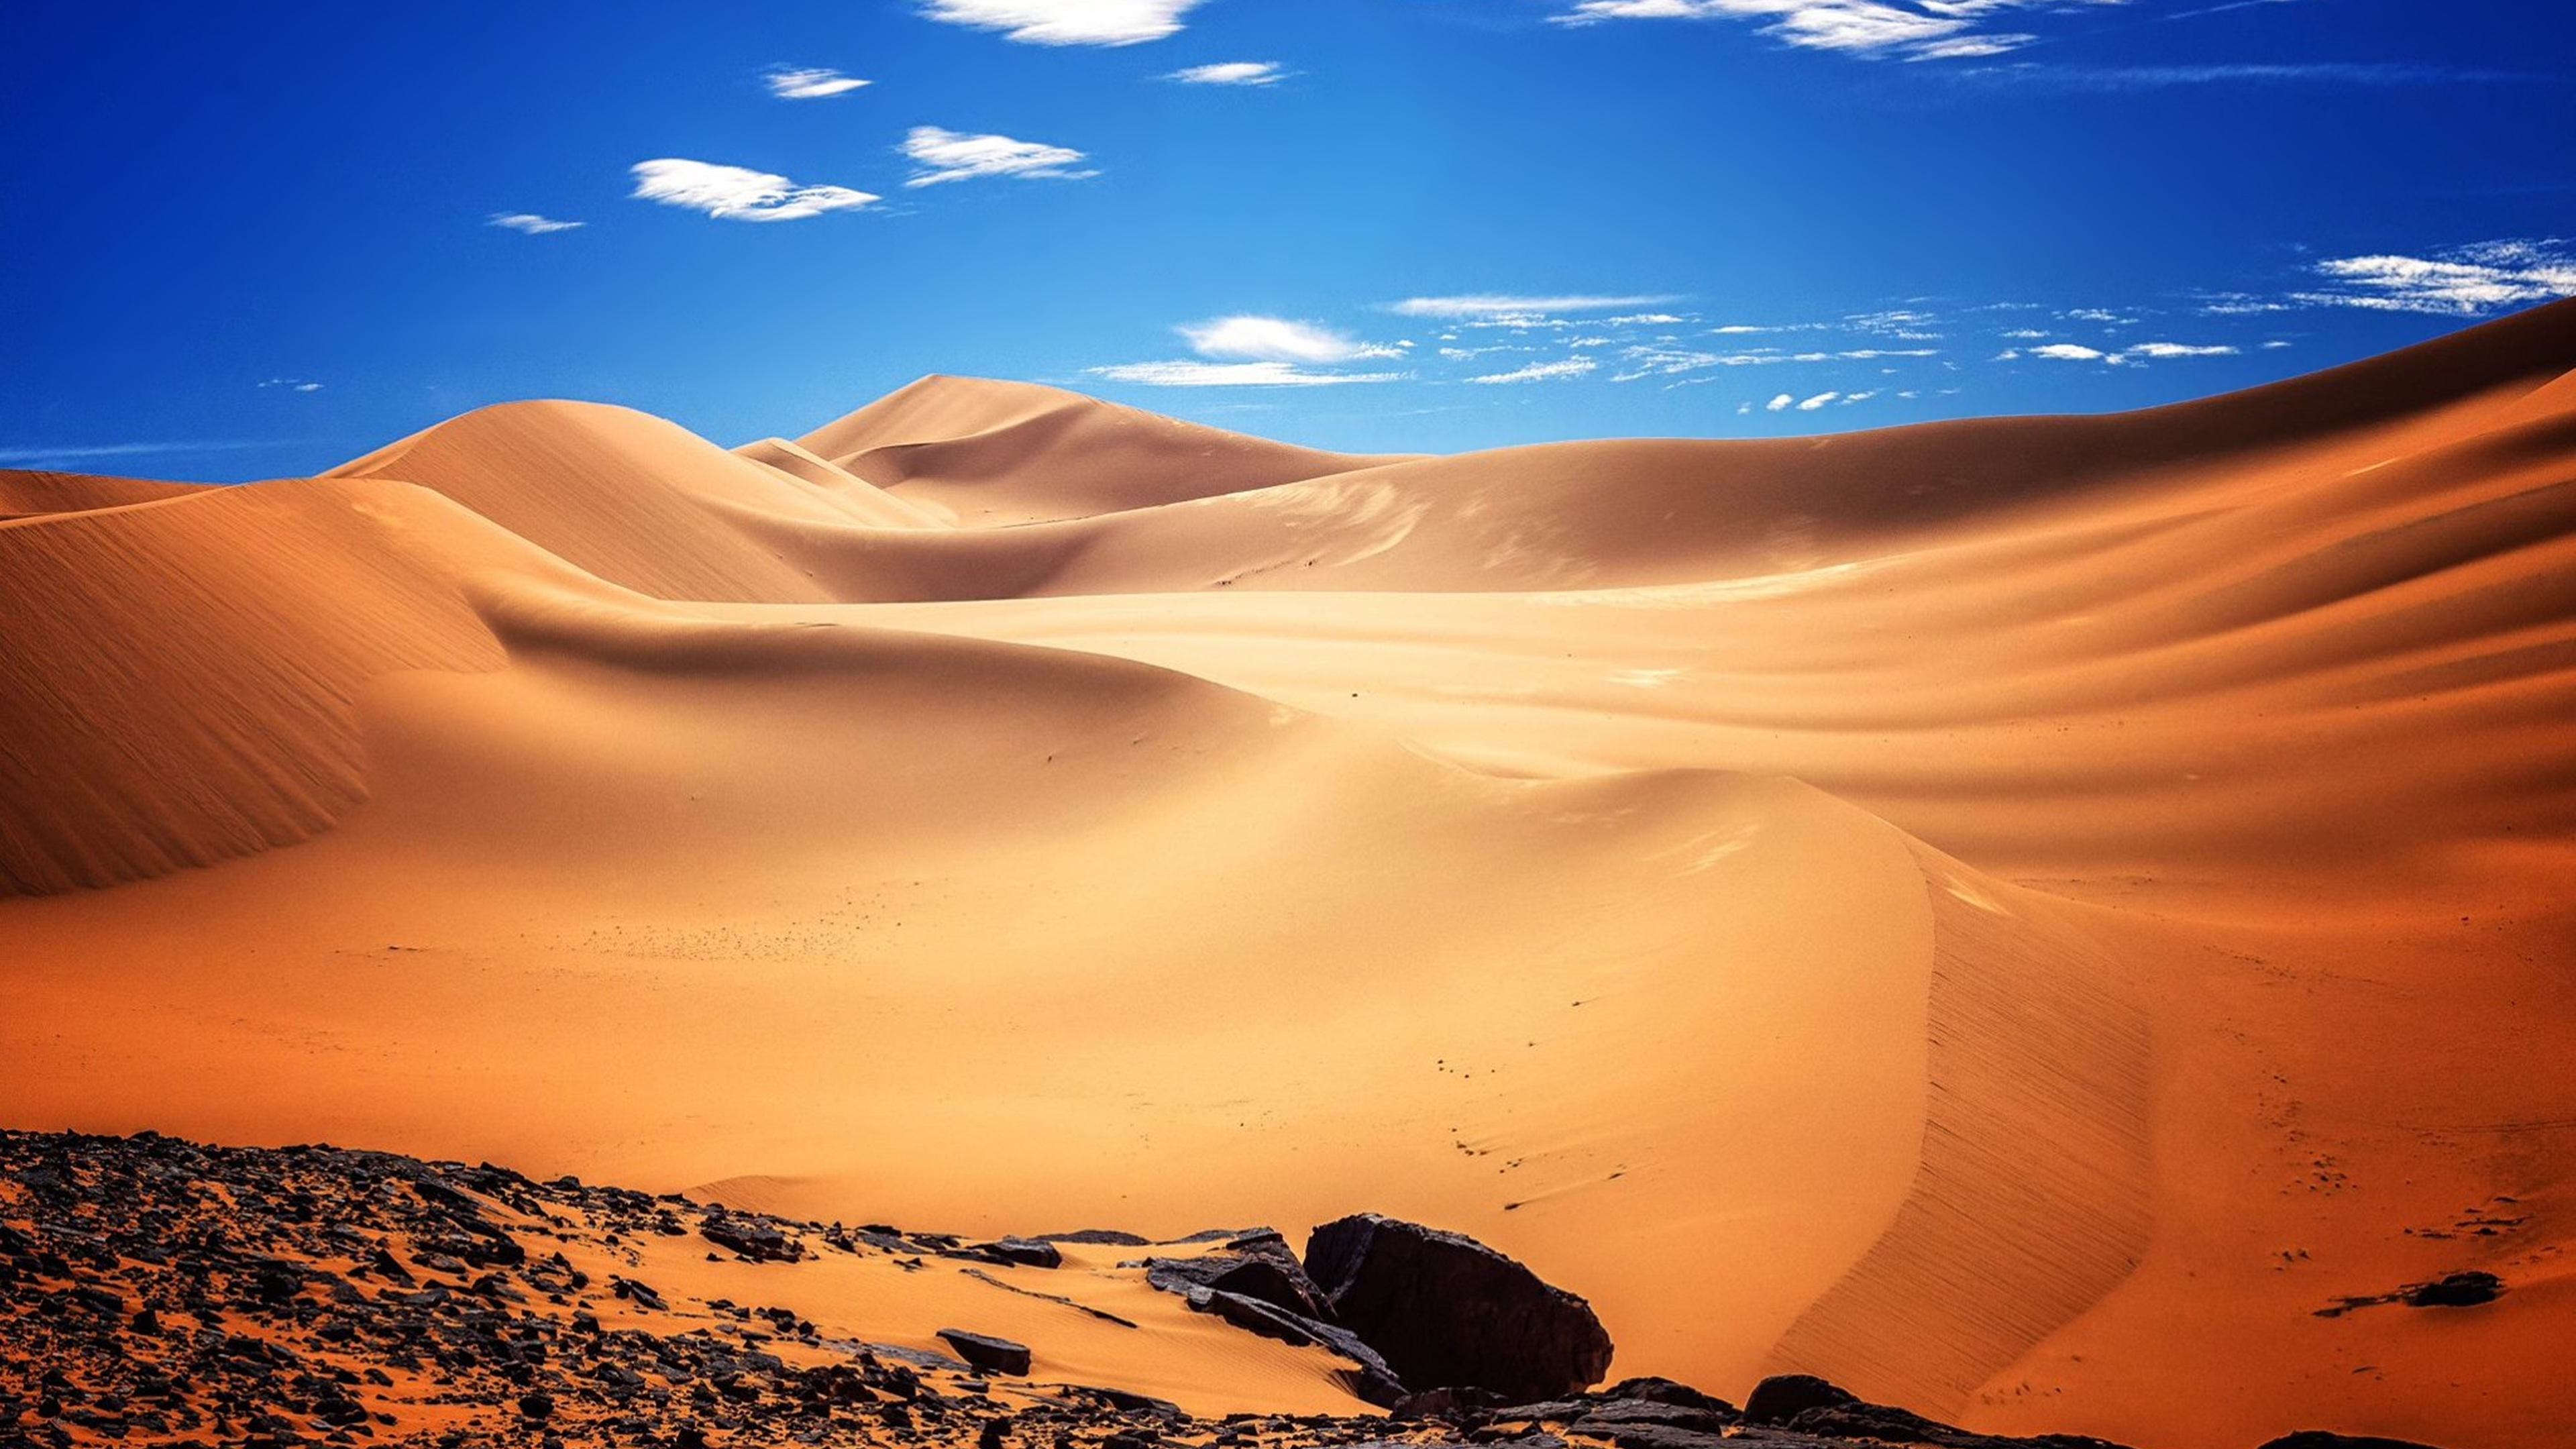 africa algeria desert 4k 1540135881 - Africa Algeria Desert 4k - sahara wallpapers, rocks wallpapers, nature wallpapers, hd-wallpapers, dune wallpapers, desert wallpapers, africa wallpapers, 4k-wallpapers